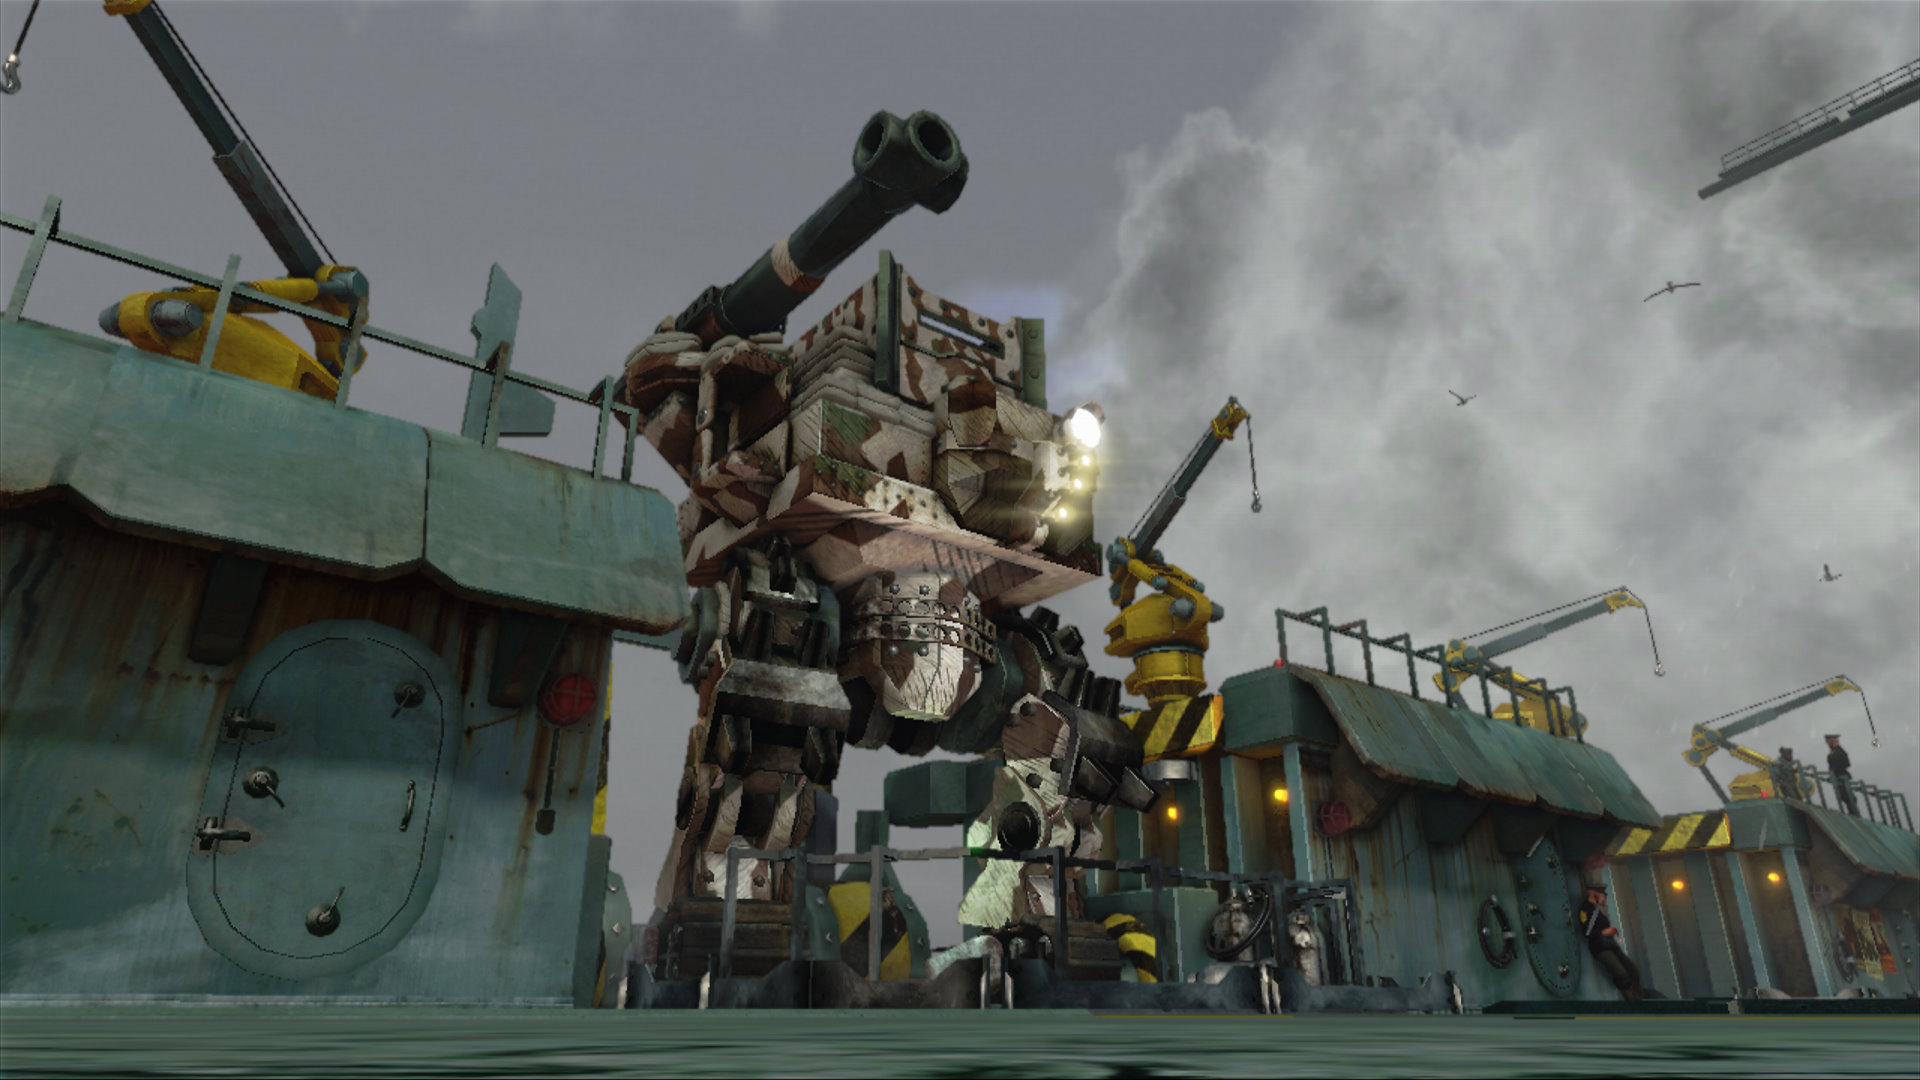 Double Fine still considering Trenched DLC, no official plans yet